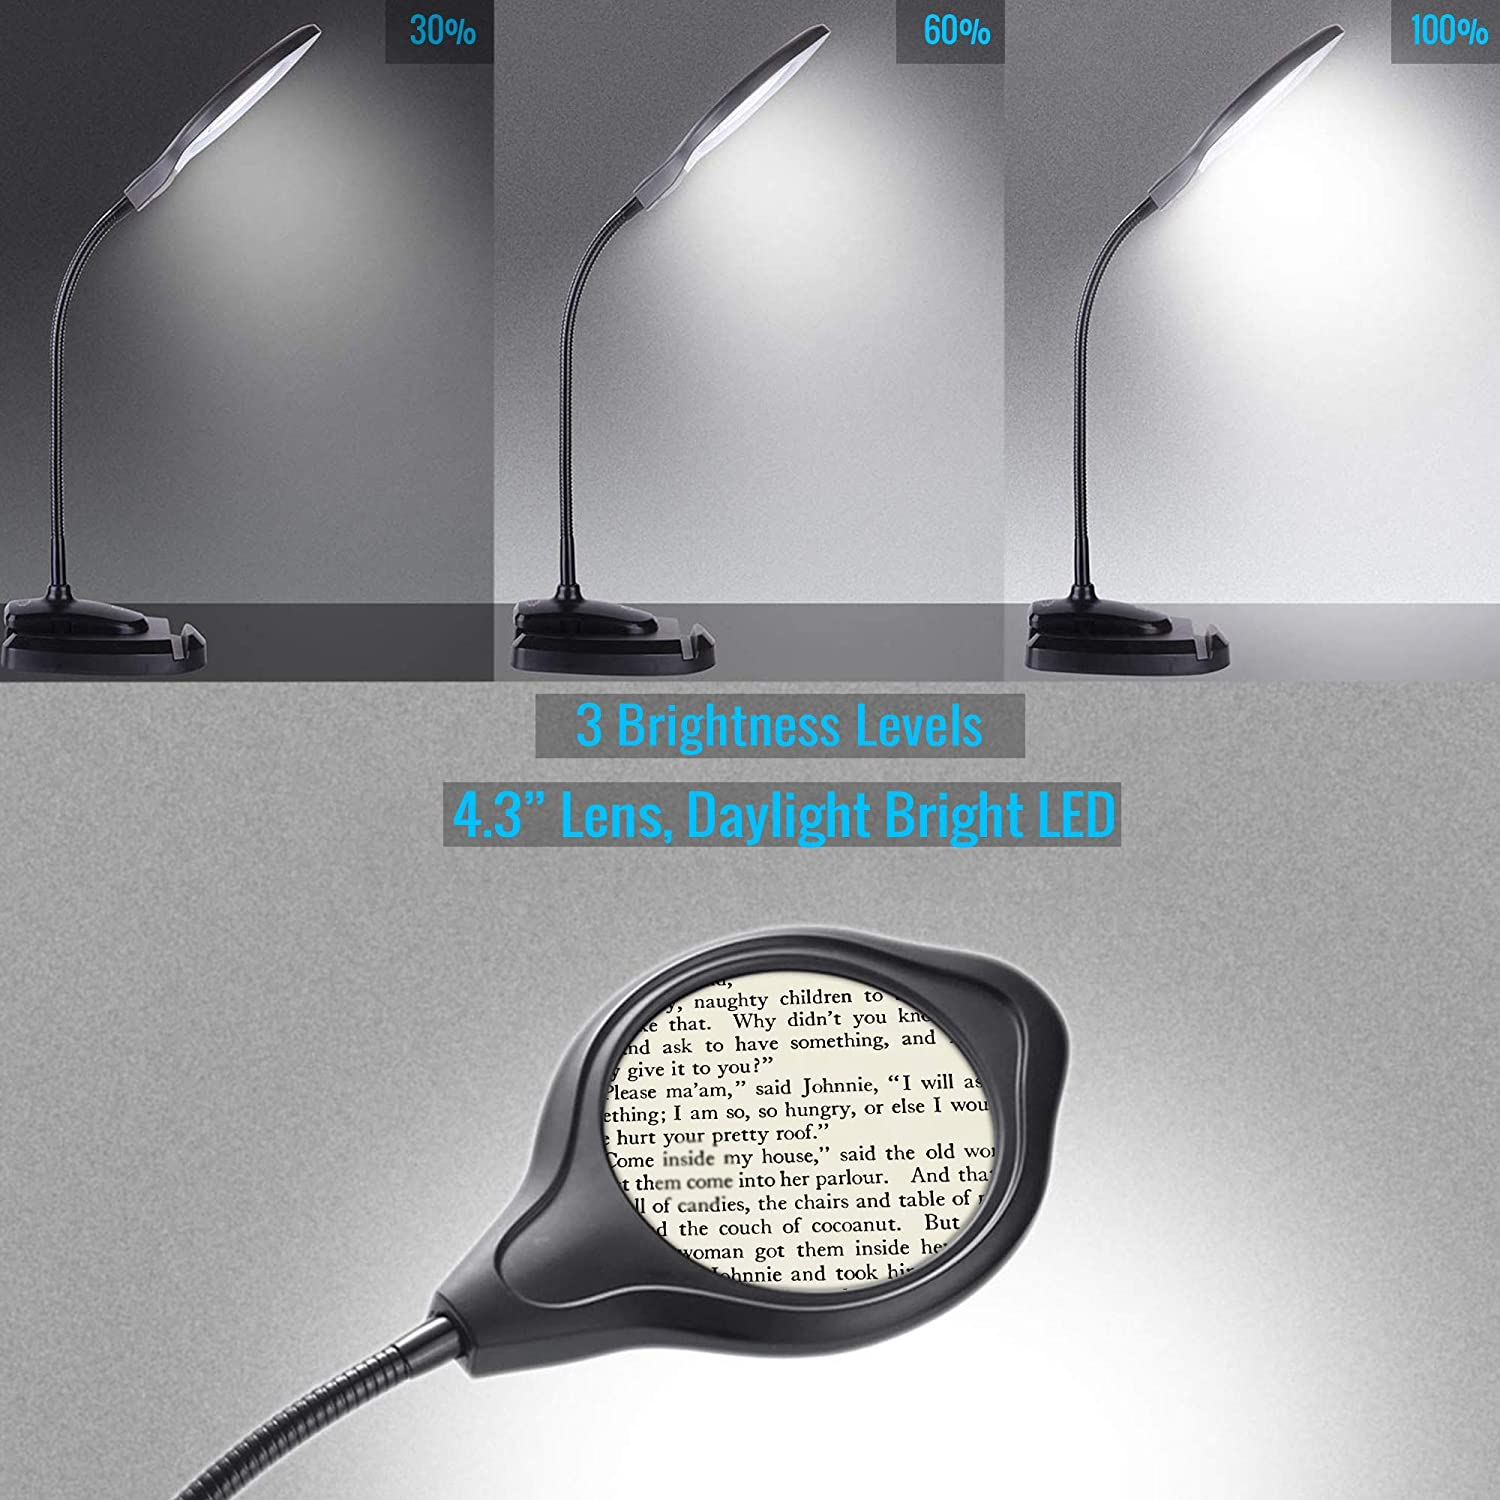 OKOA Dimmable Magnifying Desk Lamp LED Light Lighted Magnifier with Stand /& Utility Clamp Magnifying Glass with Light for Reading Close Work Workbench Task Crafts Hobbies Sewing Repair OKOA Depot